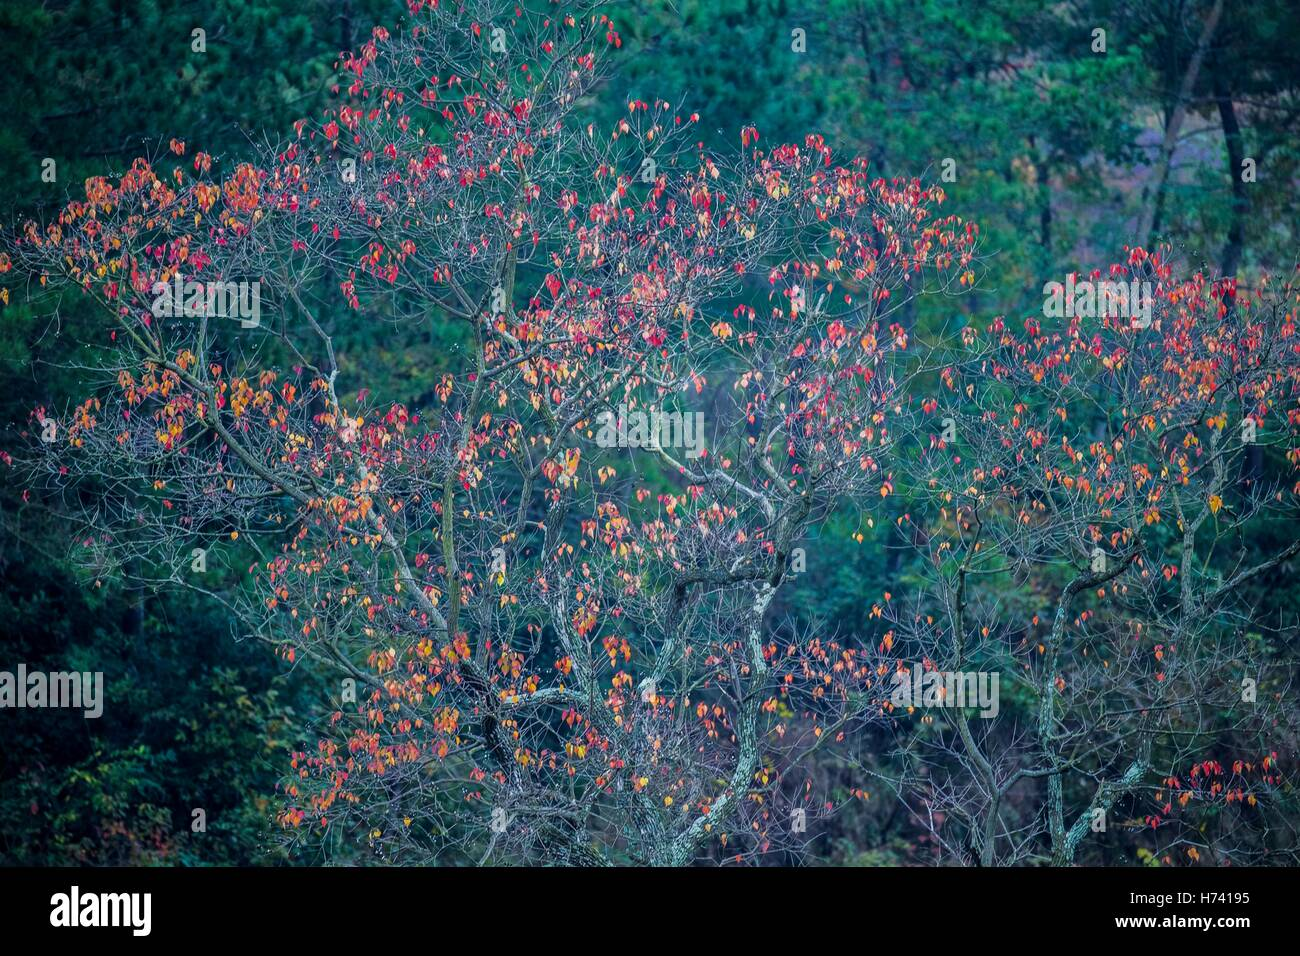 Dawu. 2nd Nov, 2016. Photo taken on Nov. 2, 2016 shows a Chinese tallow tree in Beishan Village of Dawu County, - Stock Image